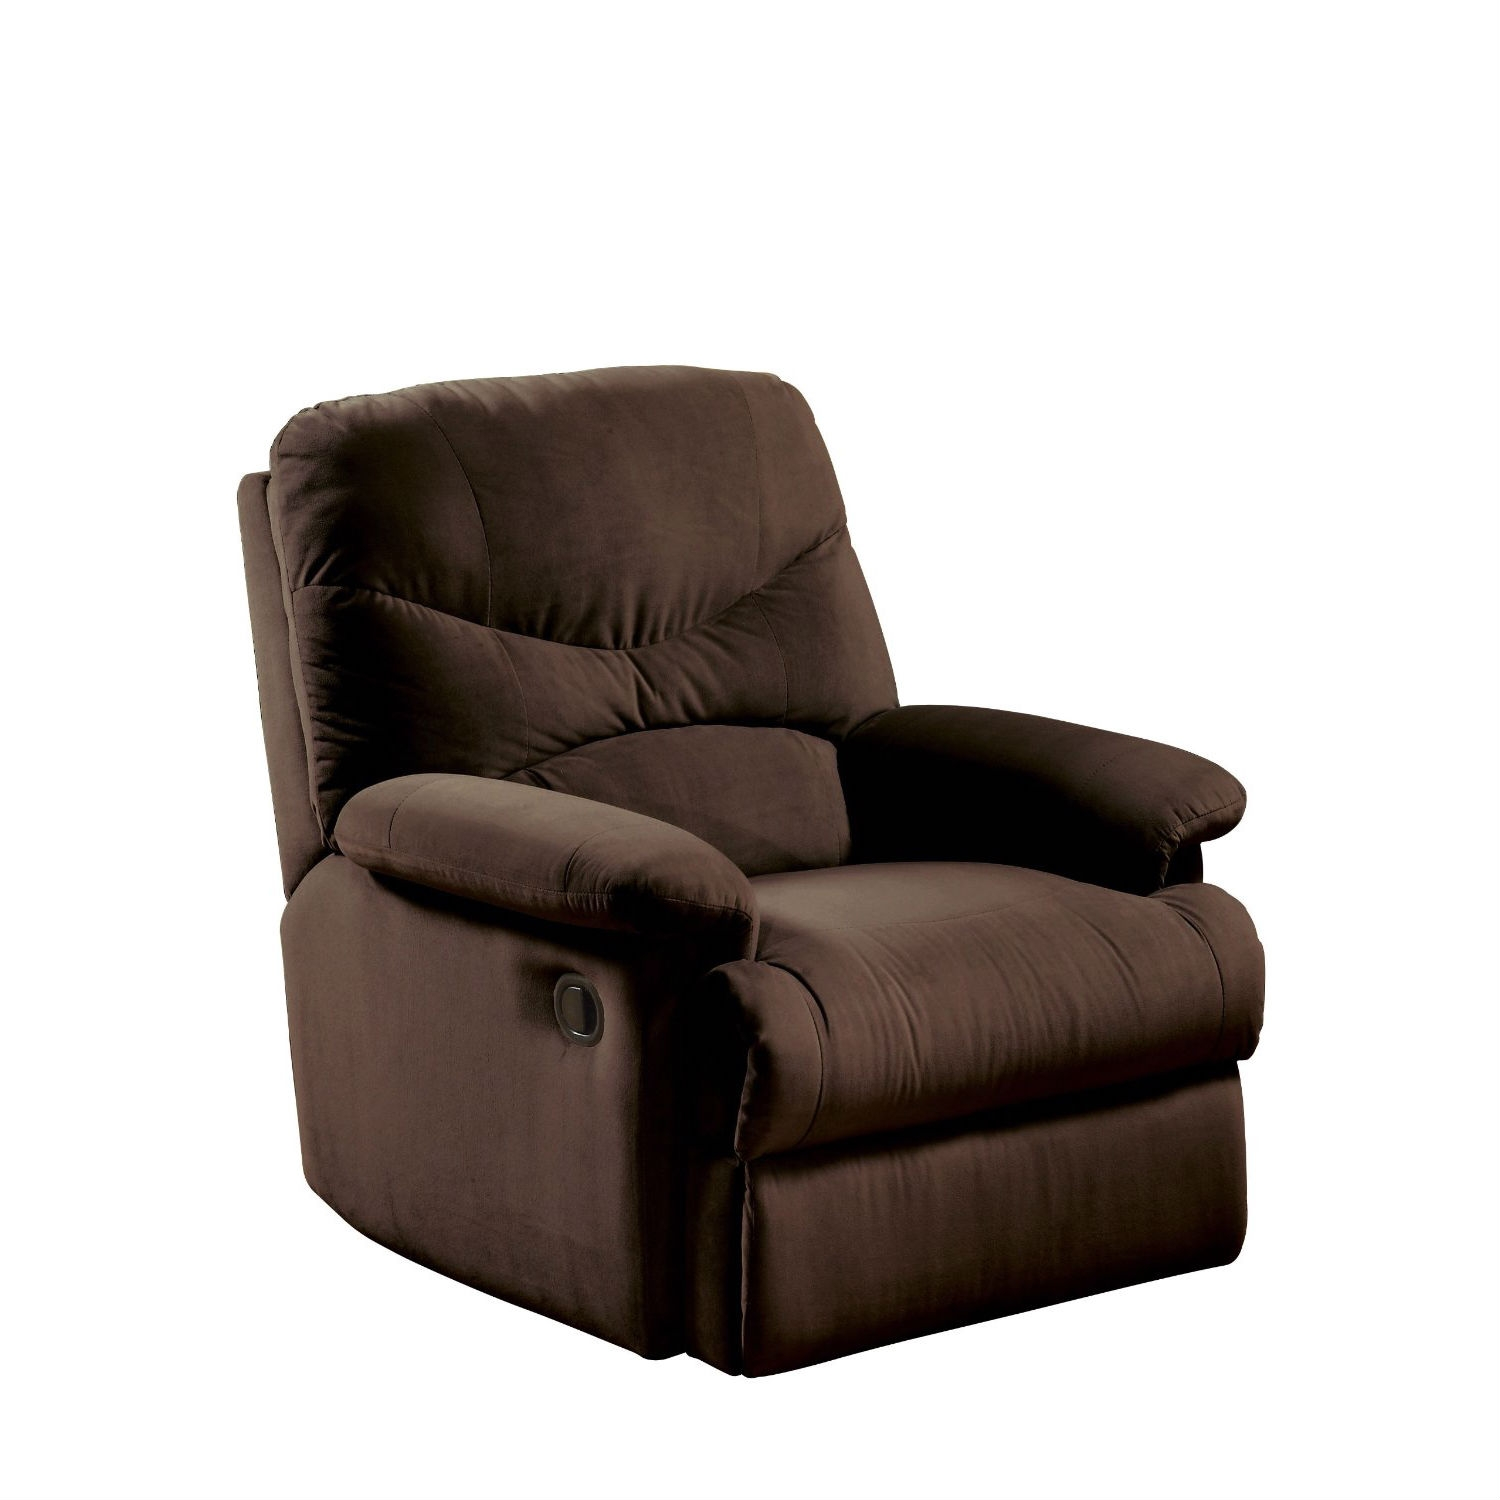 This Comfortable Recliner Chair in Chocolate Brown Microfiber Upholstery would be a great addition to your home. It has a lowering seat back knob and a footrest extension. Stain-resistant microfiber upholstery; Side knob for lowering seat back and pull lever for footrest extension; Some assembly required;  Limited warranty.